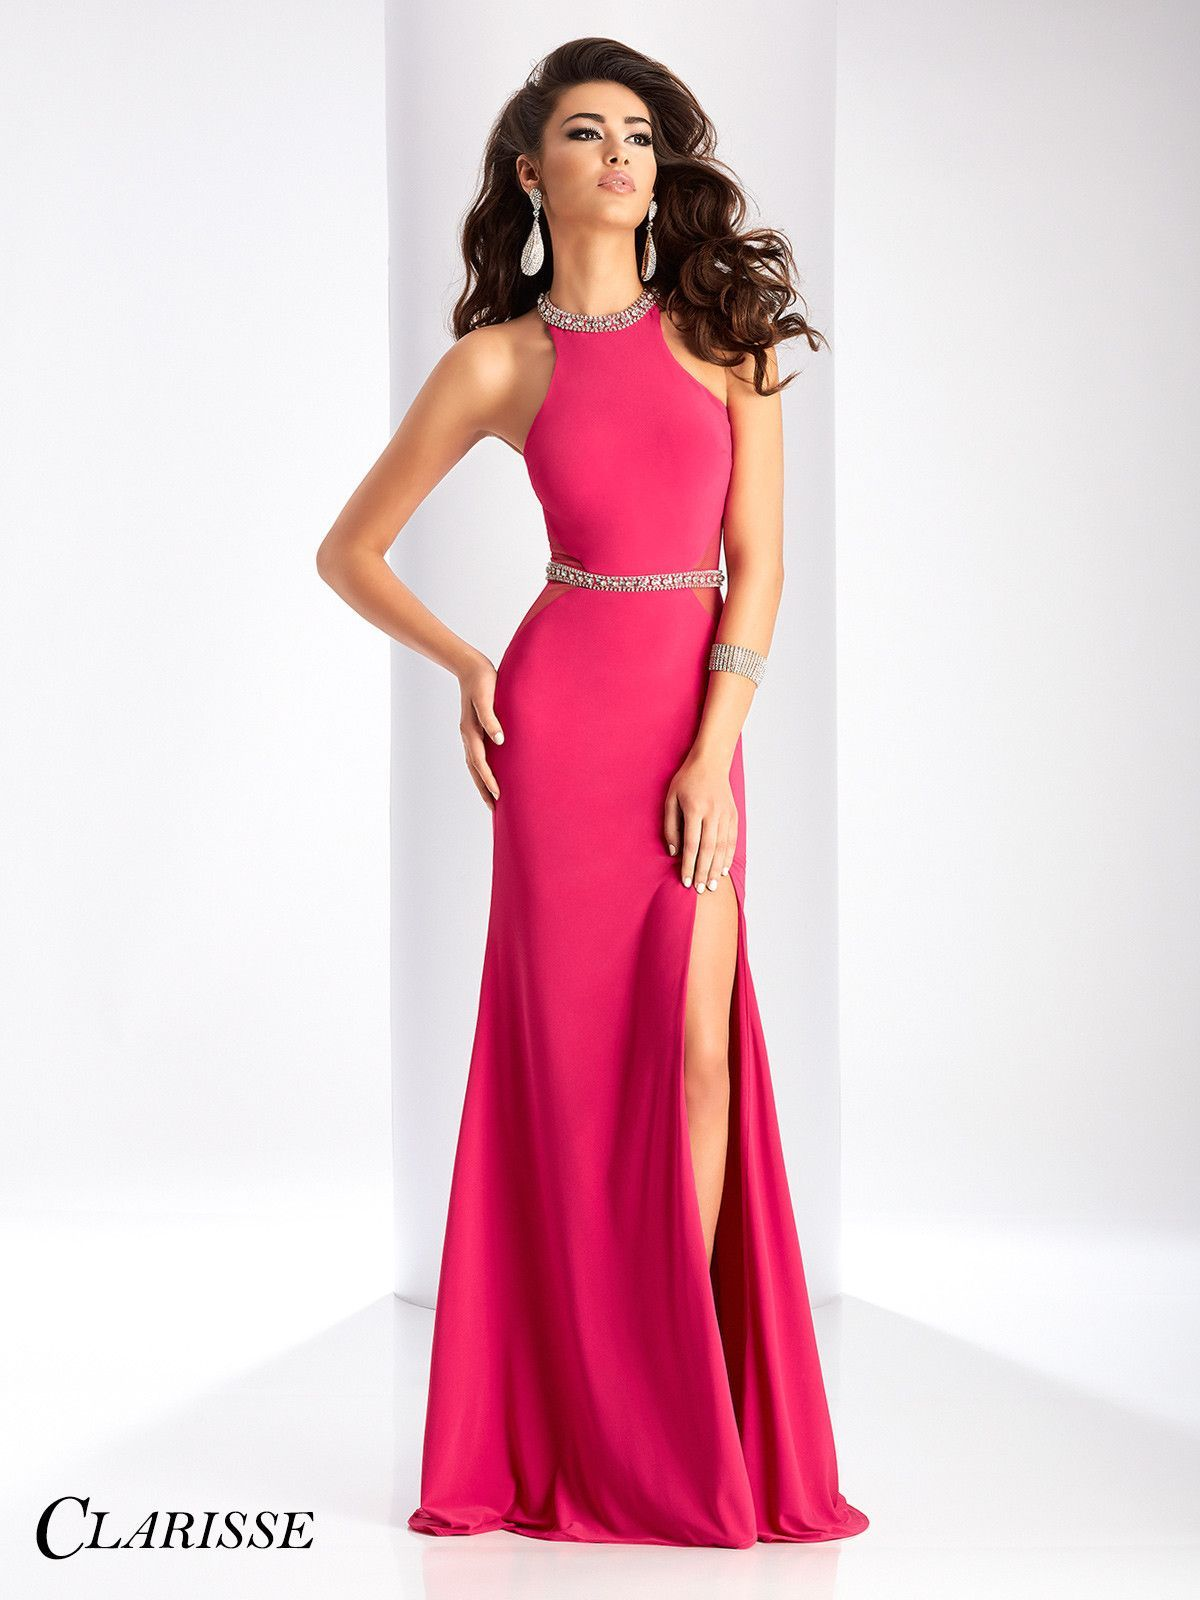 Clarisse prom dress prom fitted prom dresses and halter neck